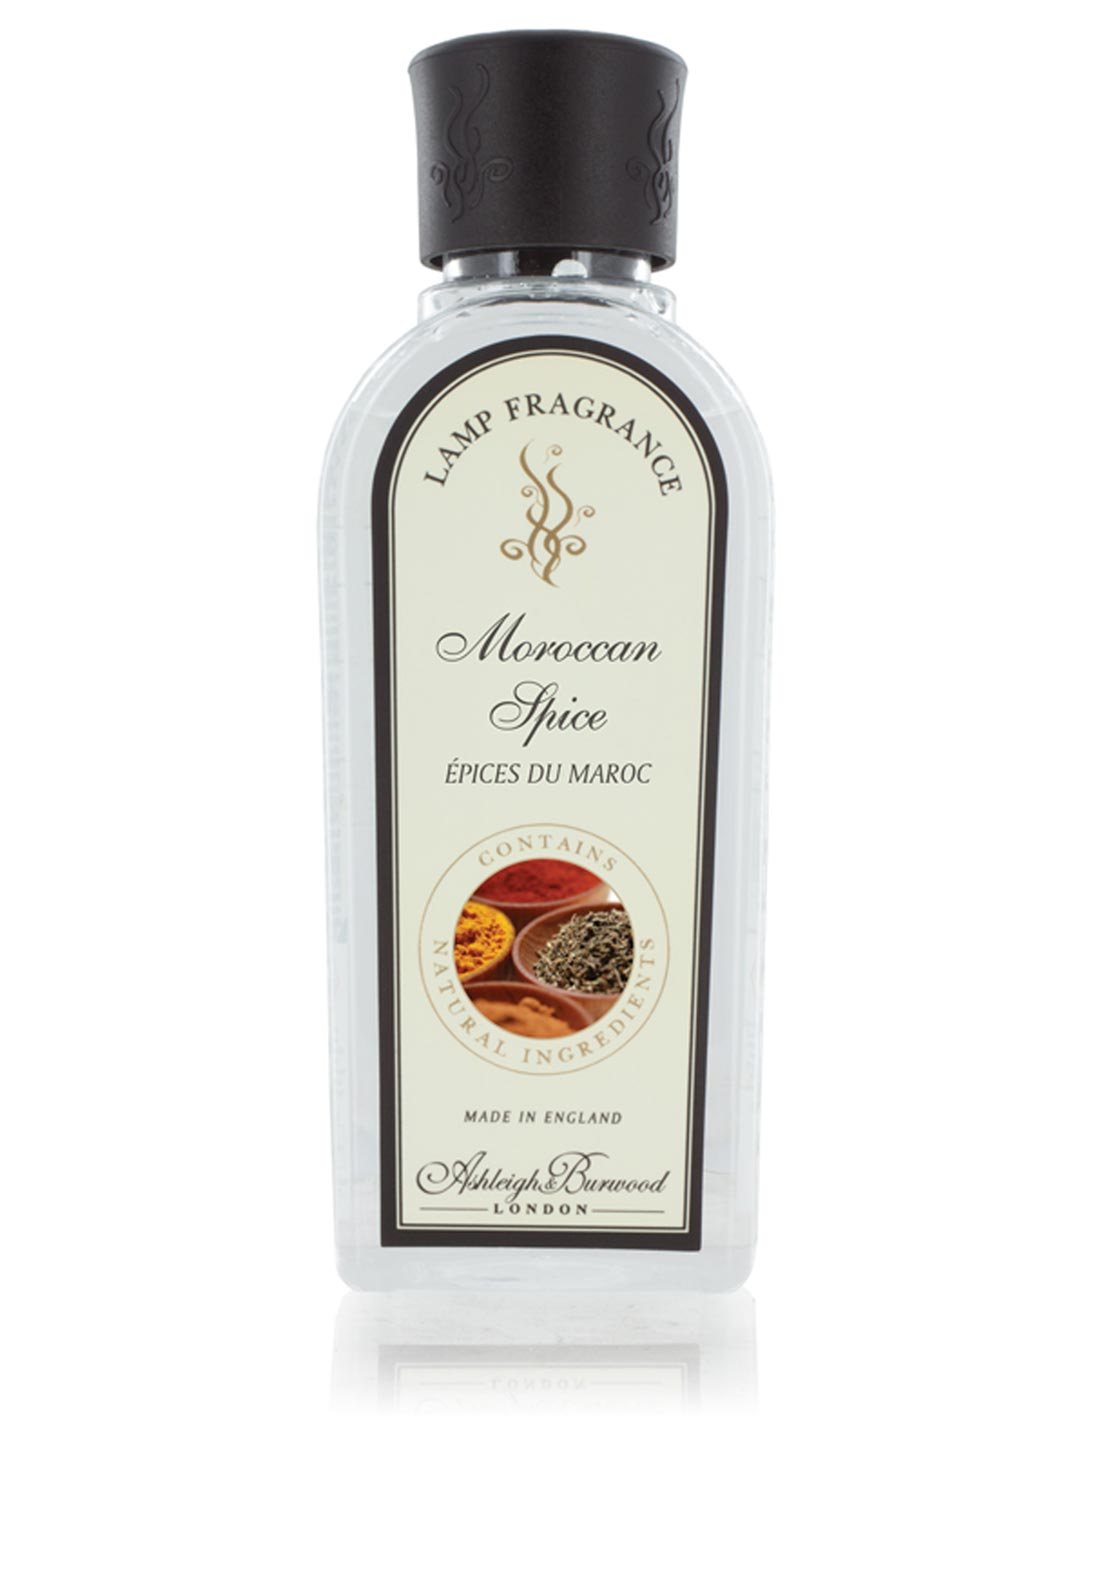 Ashleigh & Burwood Moroccan Spice Fragrance Lamp Oil